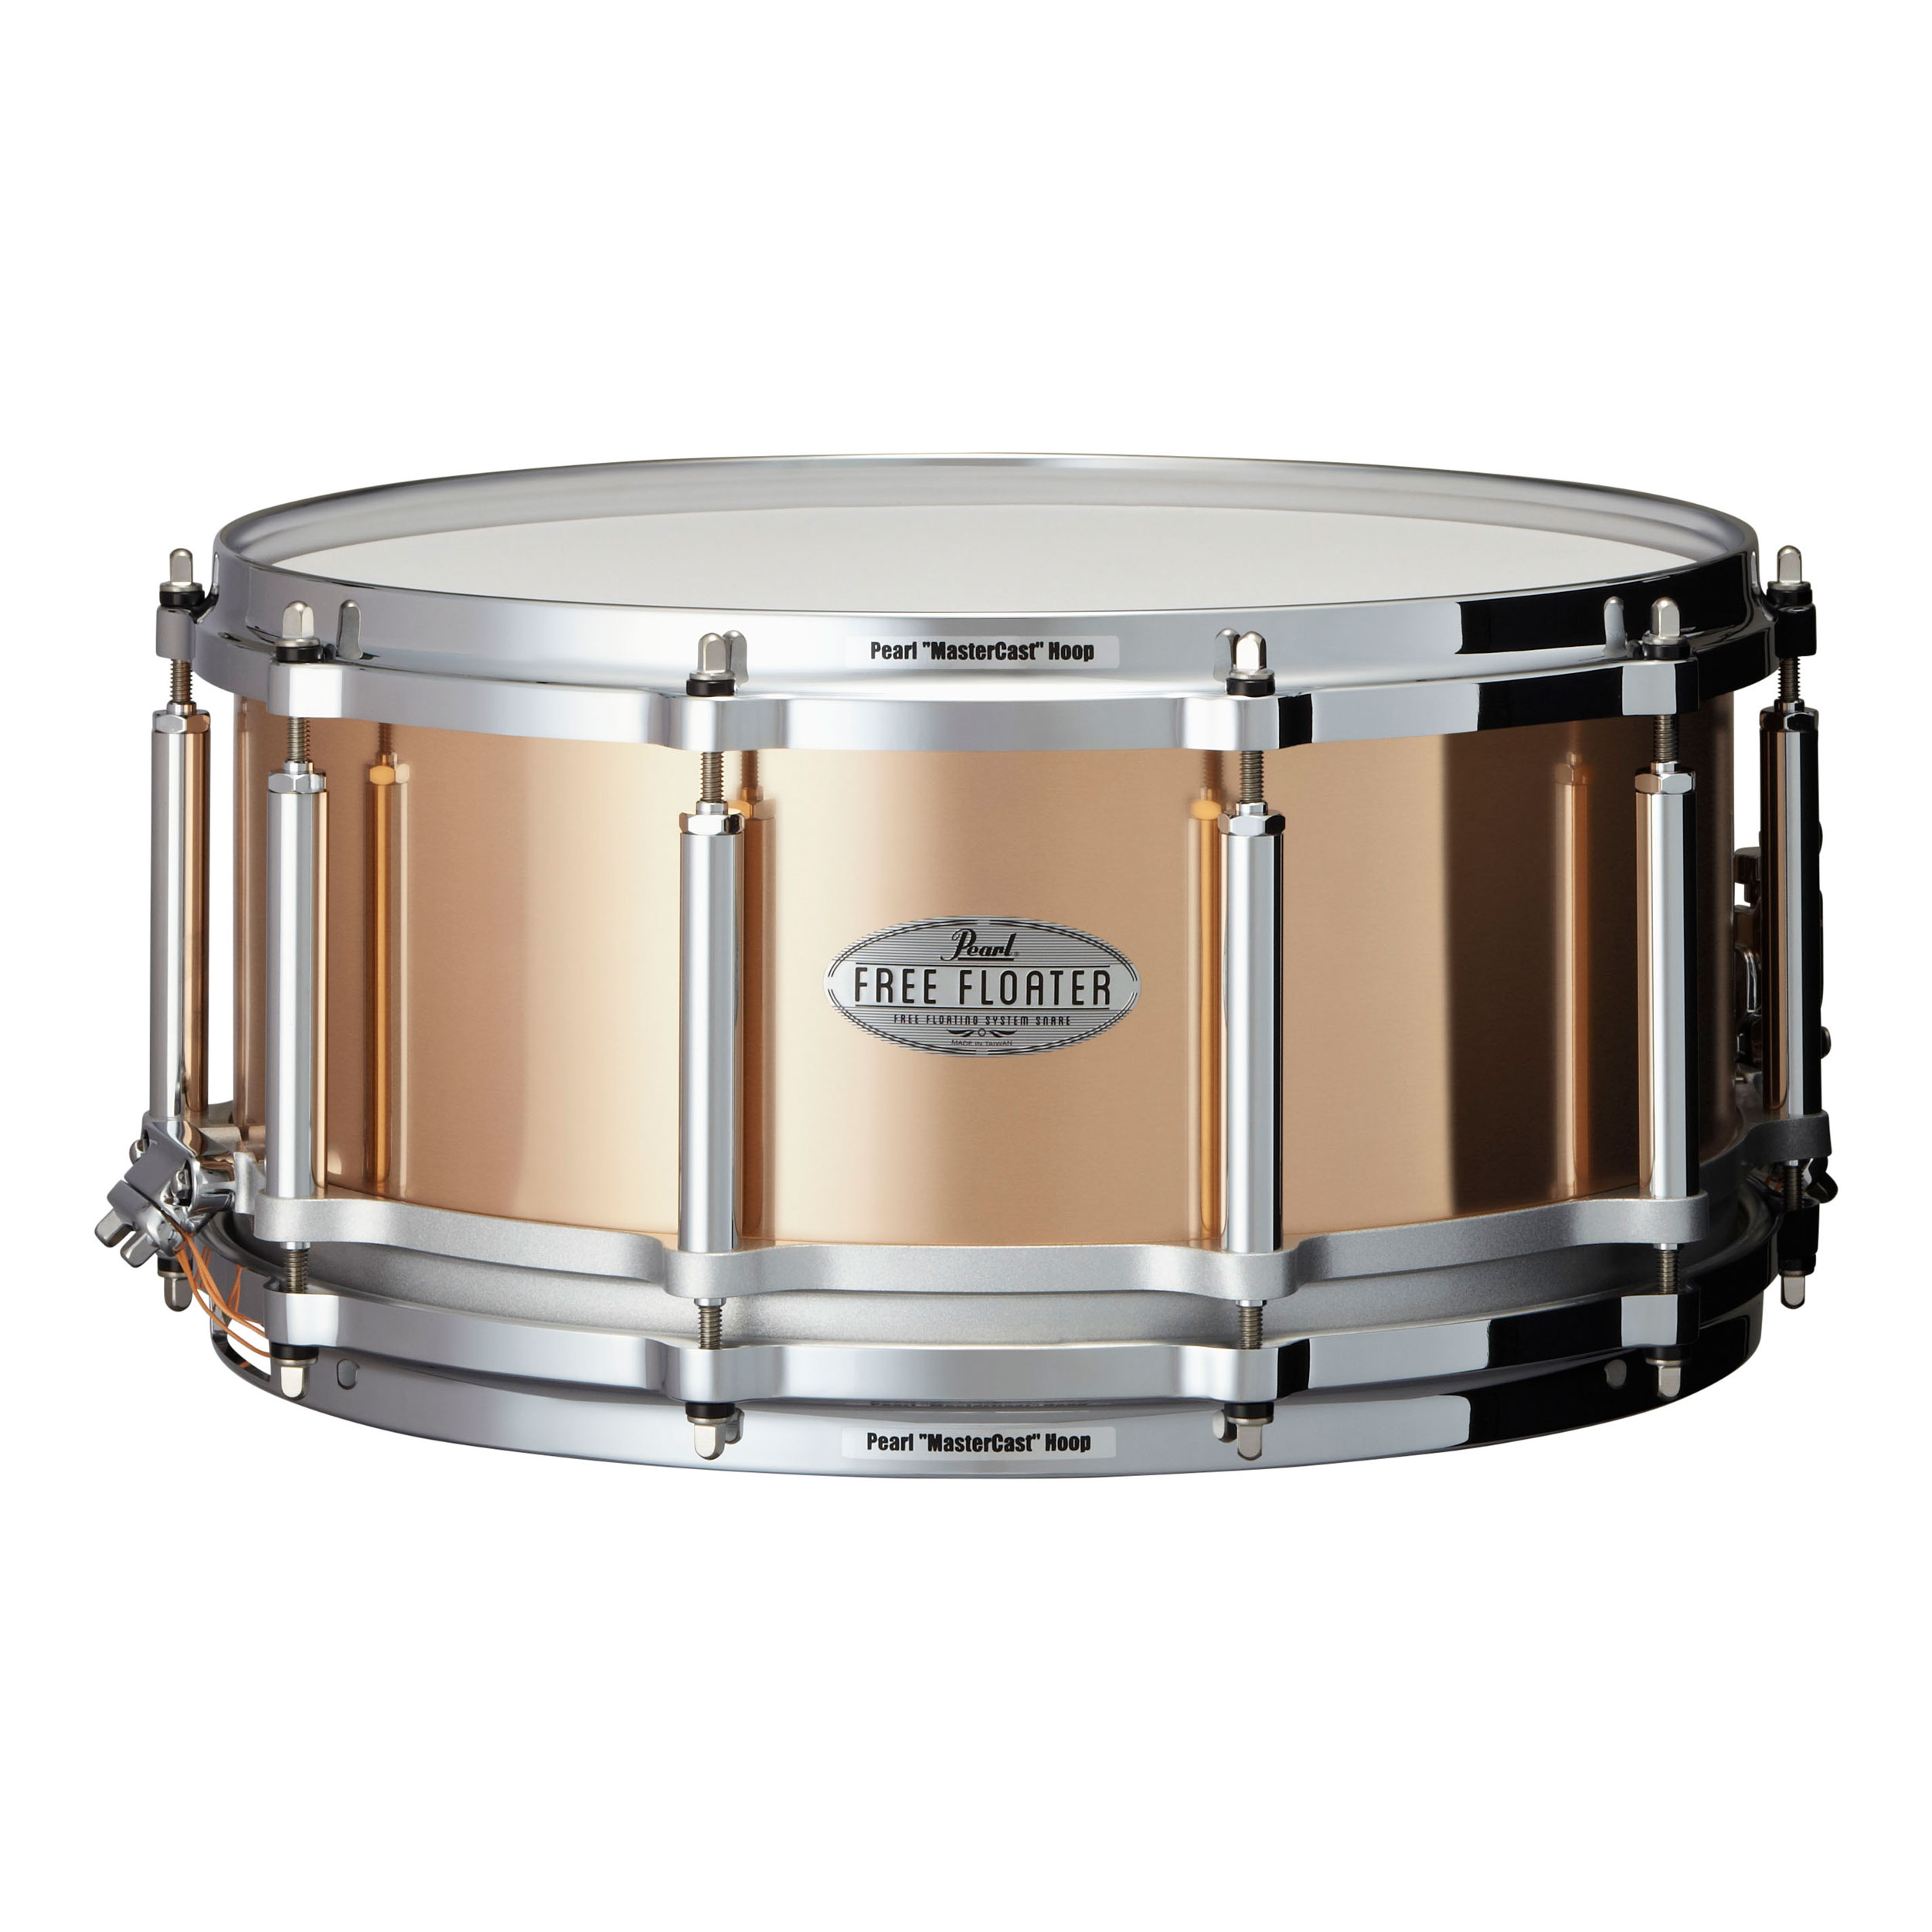 "Pearl 14"" x 6.5"" Task-Specific Free Floating Phosphor Bronze Snare Drum"